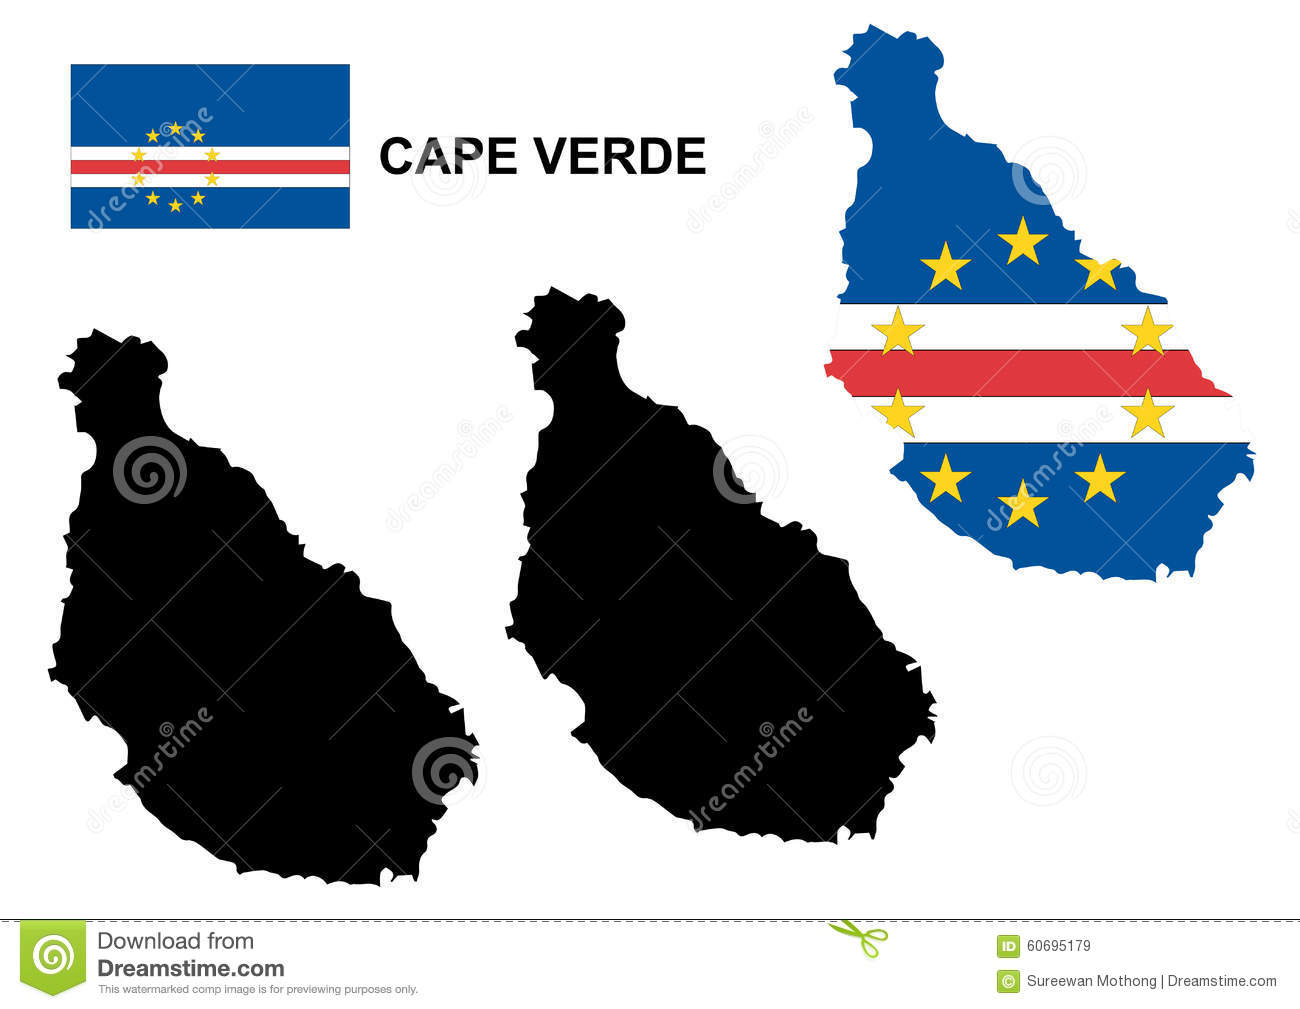 Cabo verde map clipart.